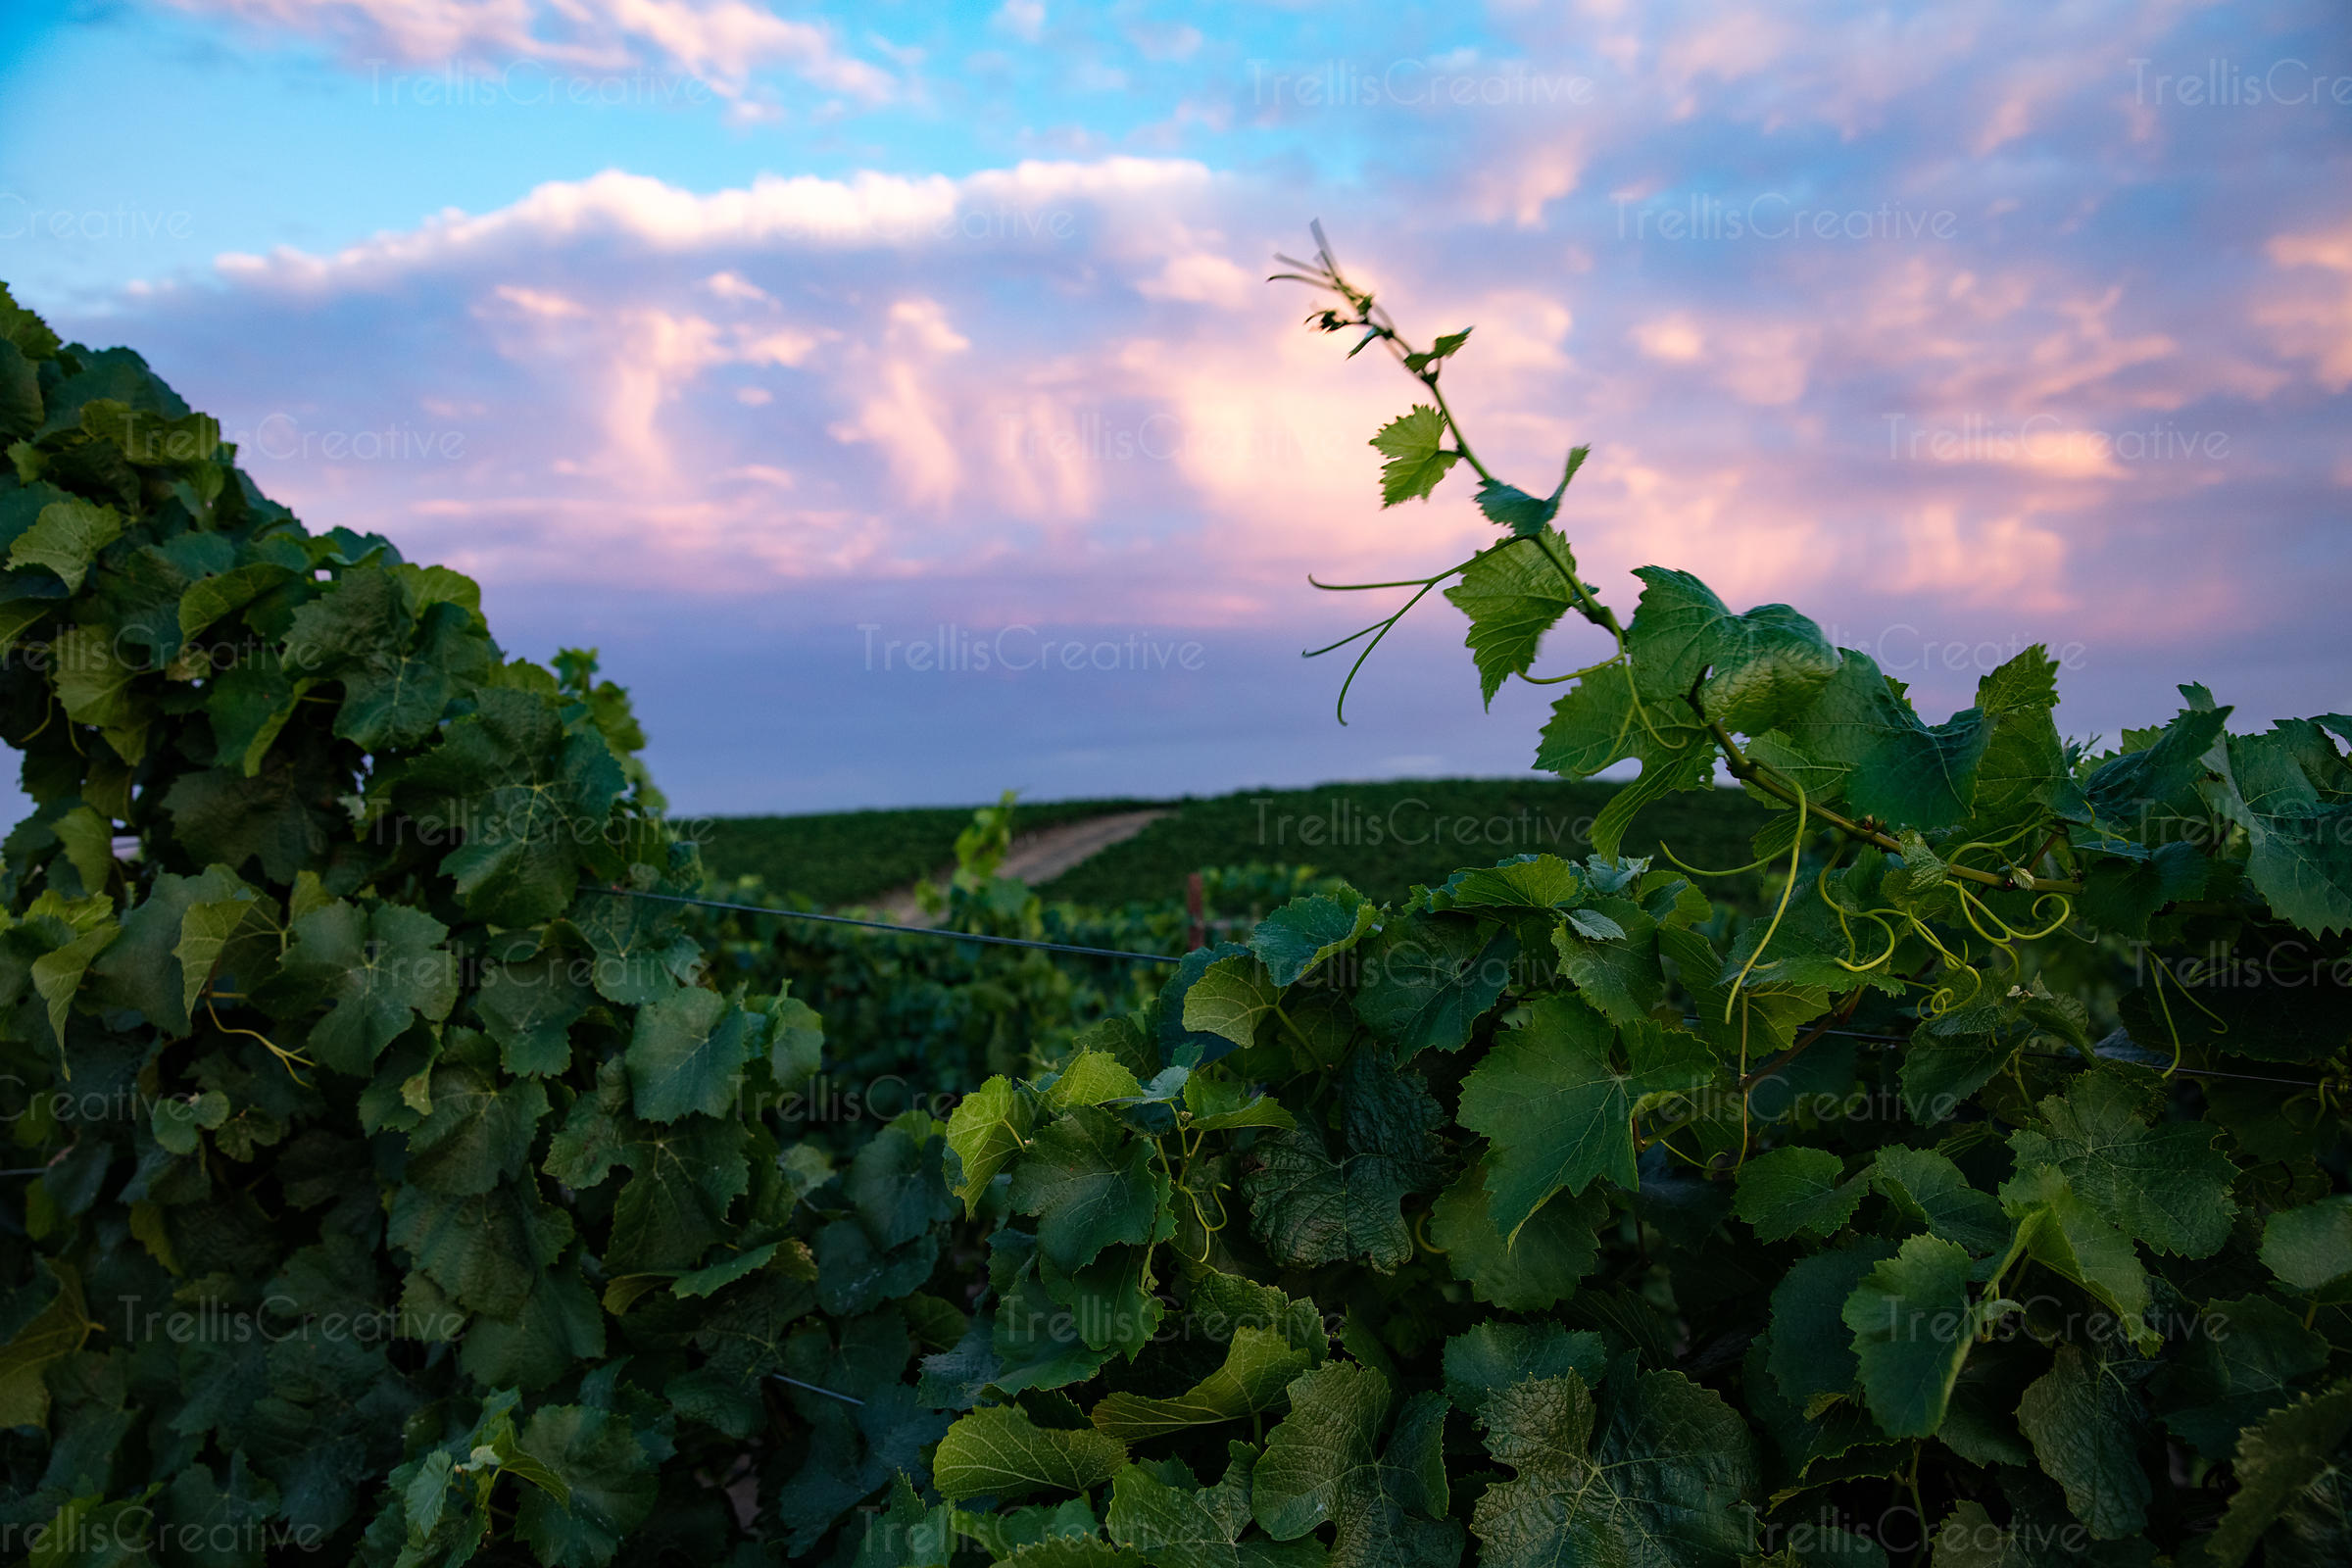 Grape vine close up during sunset